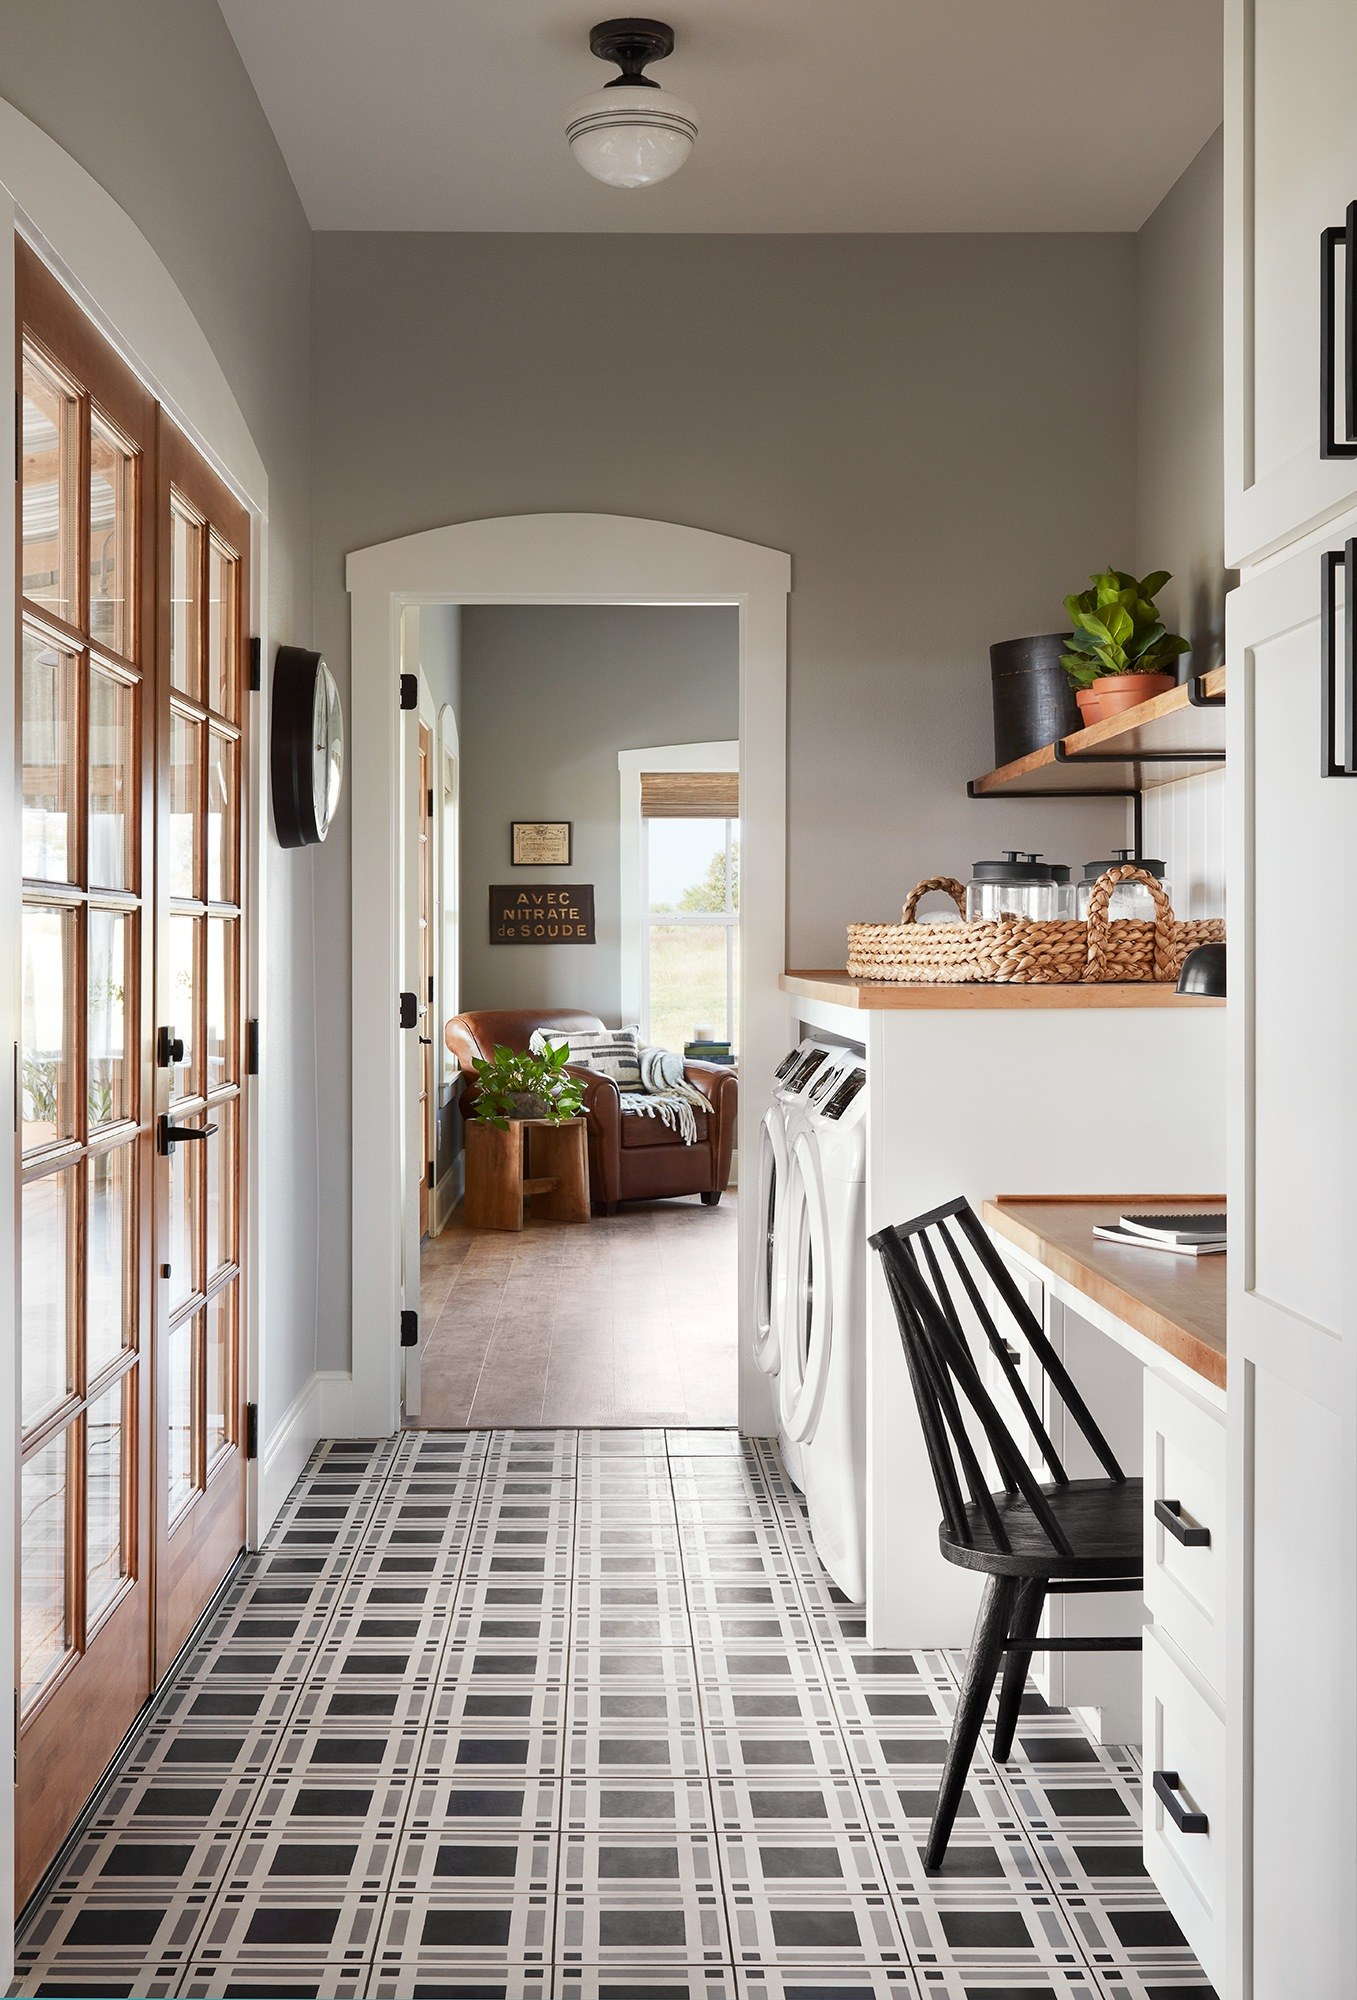 Farmhouse Laundry Room Floor Joanna Gaines Swears By These Laundry Room Essentials